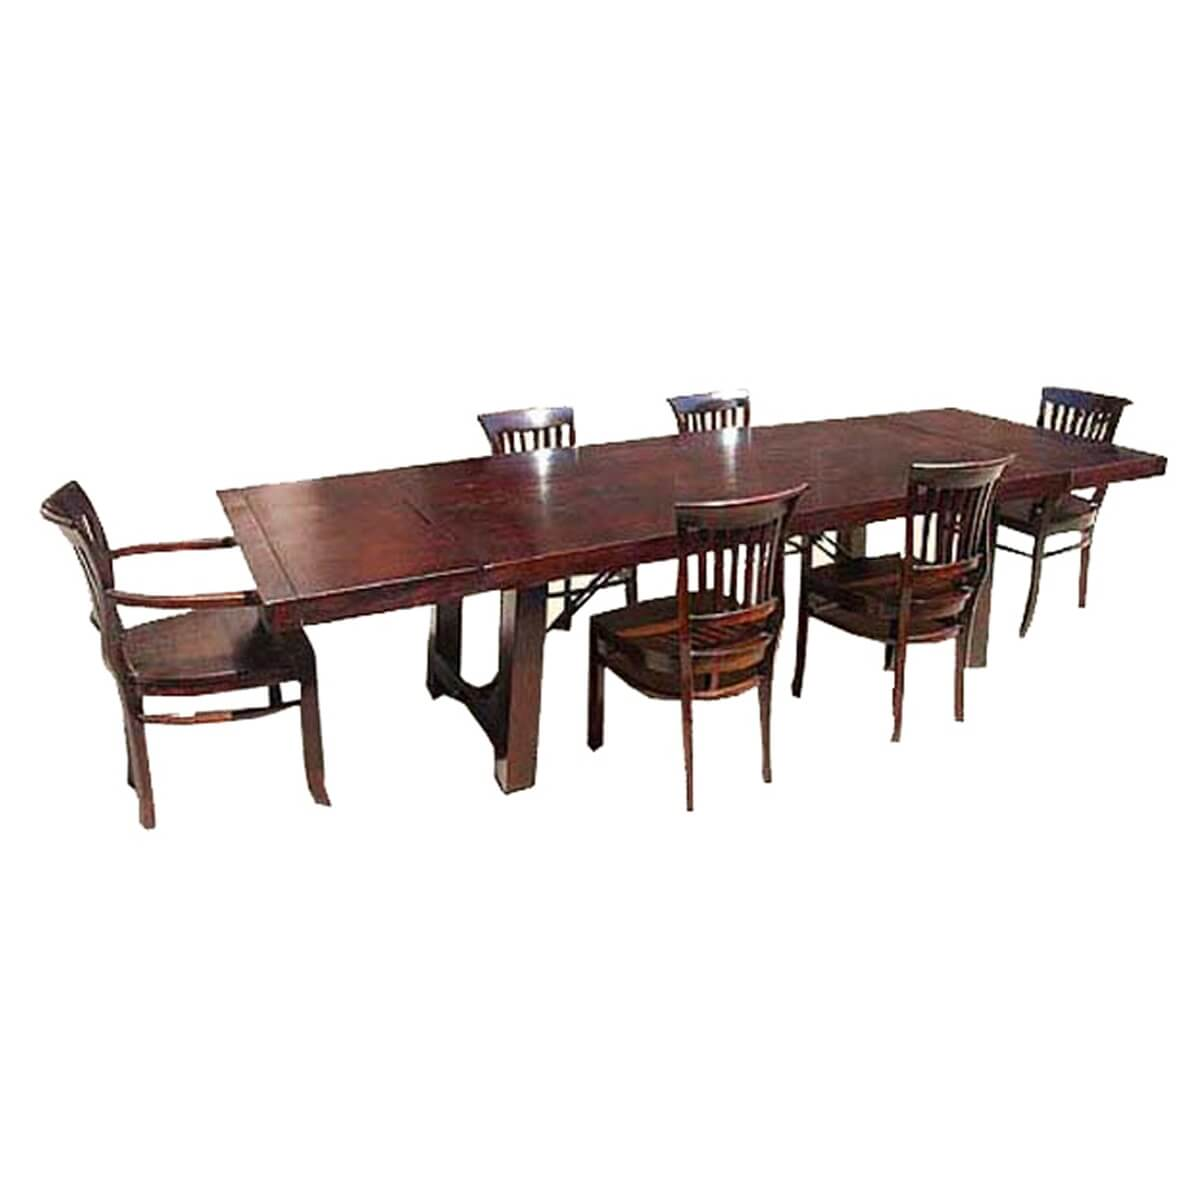 Nottingham Rustic Furniture Wood Dining Table Chair Set W Extension